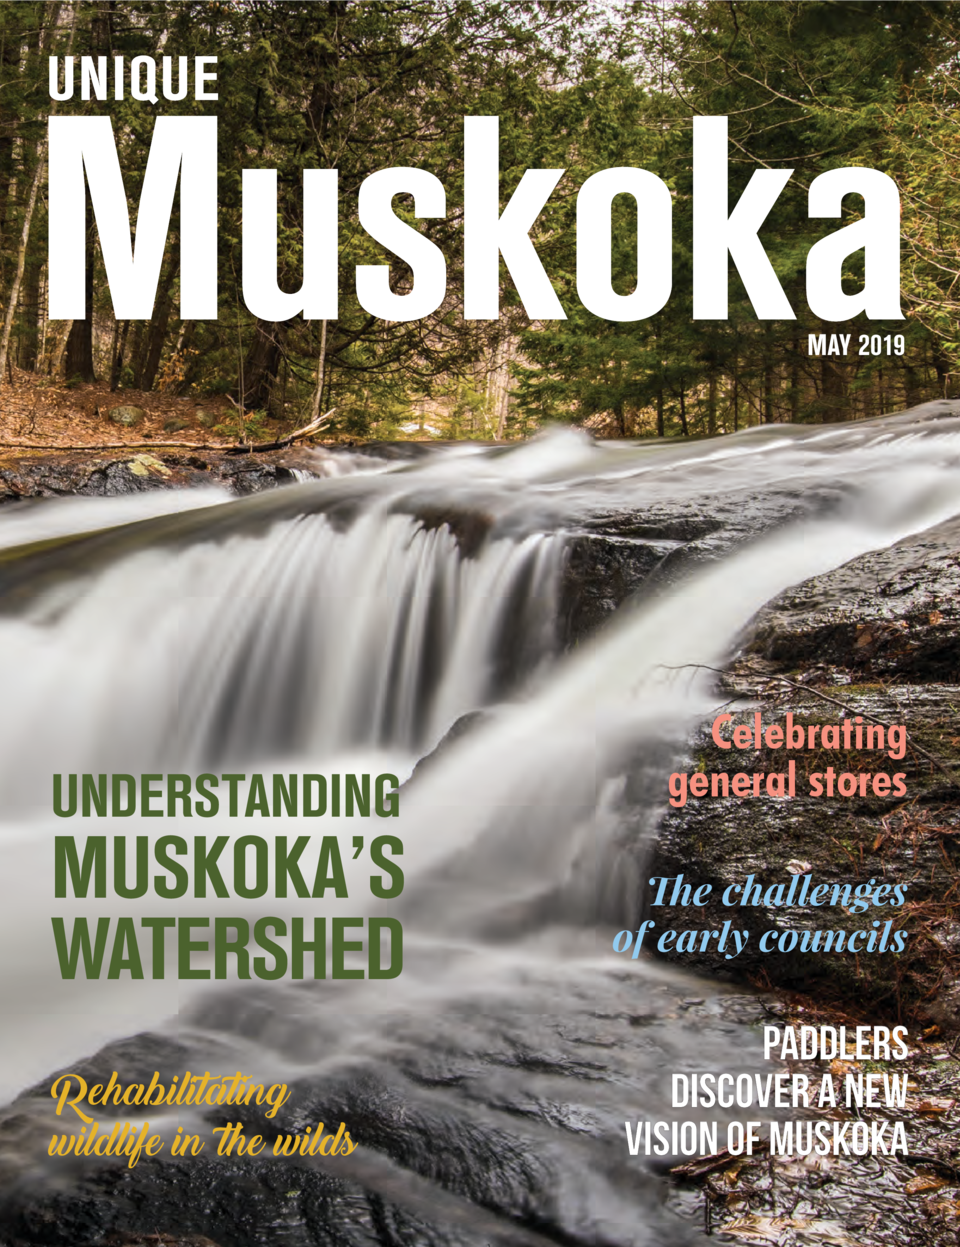 MAY 2019  UNDERSTANDING  MUSKOKA   S WATERSHED Rehabilitating wildlife in the wilds  Celebrating general stores The challe...